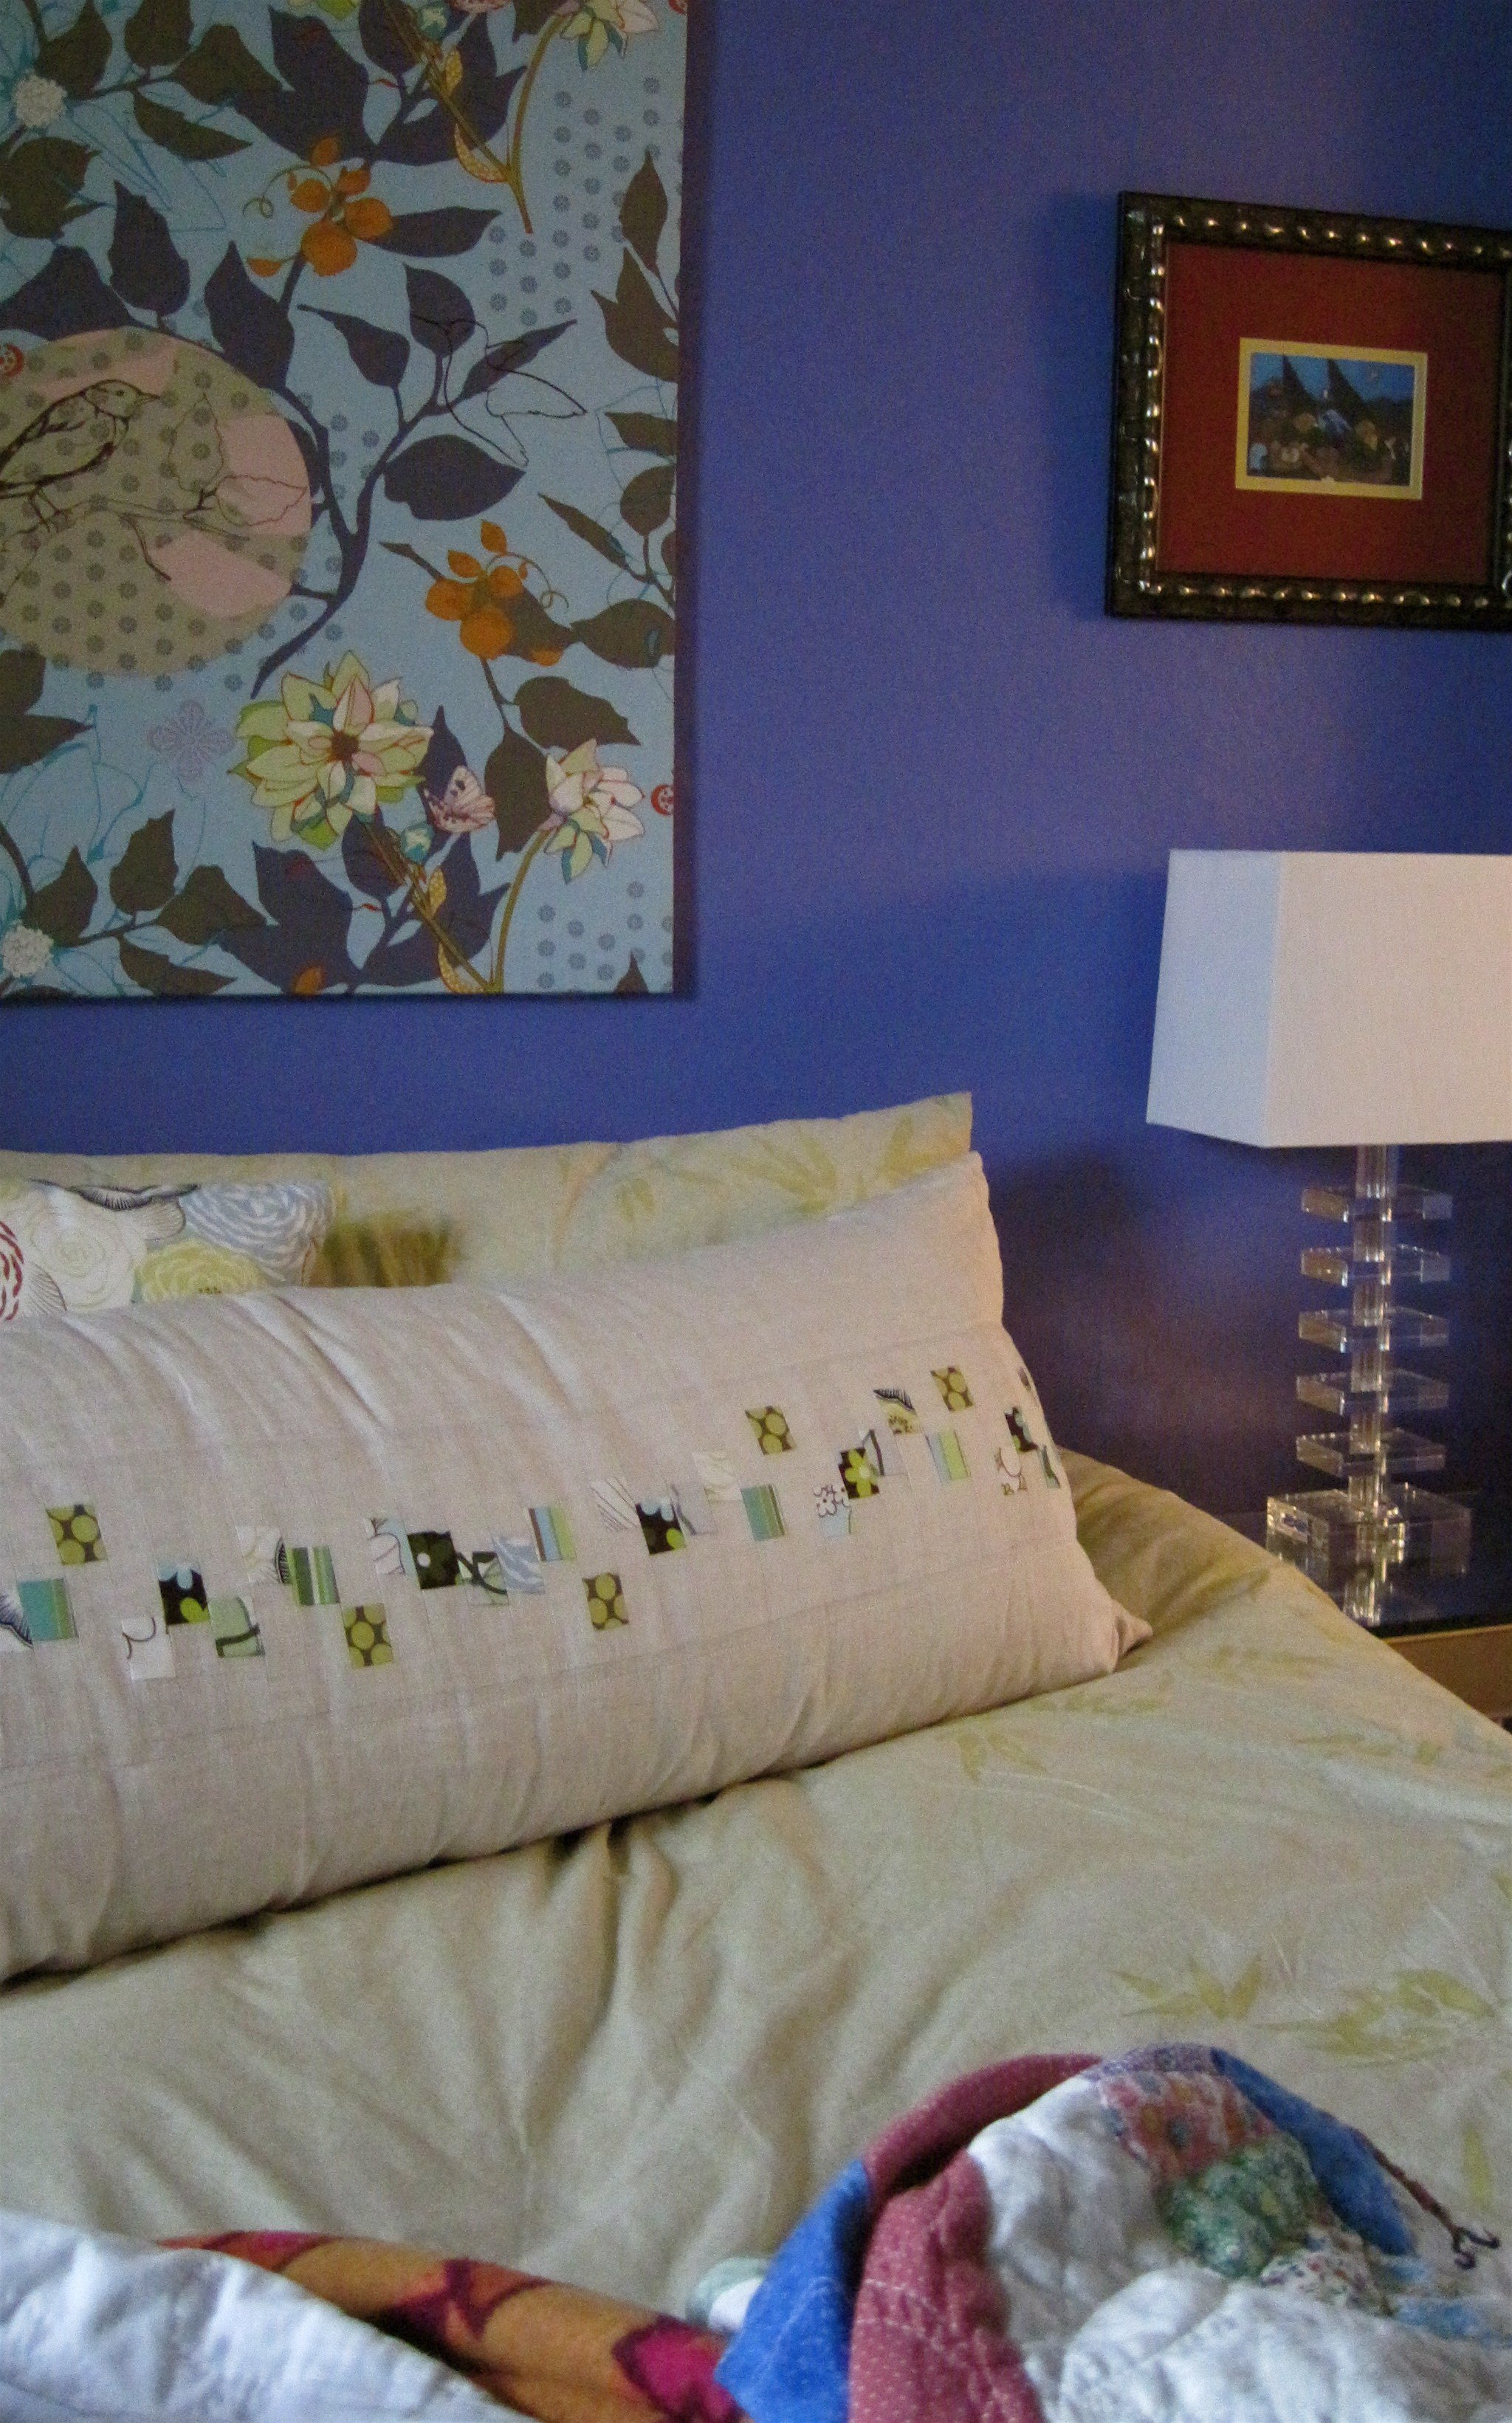 Best Pure Periwinkle Walls In My Bedroom Before I Die With Pictures